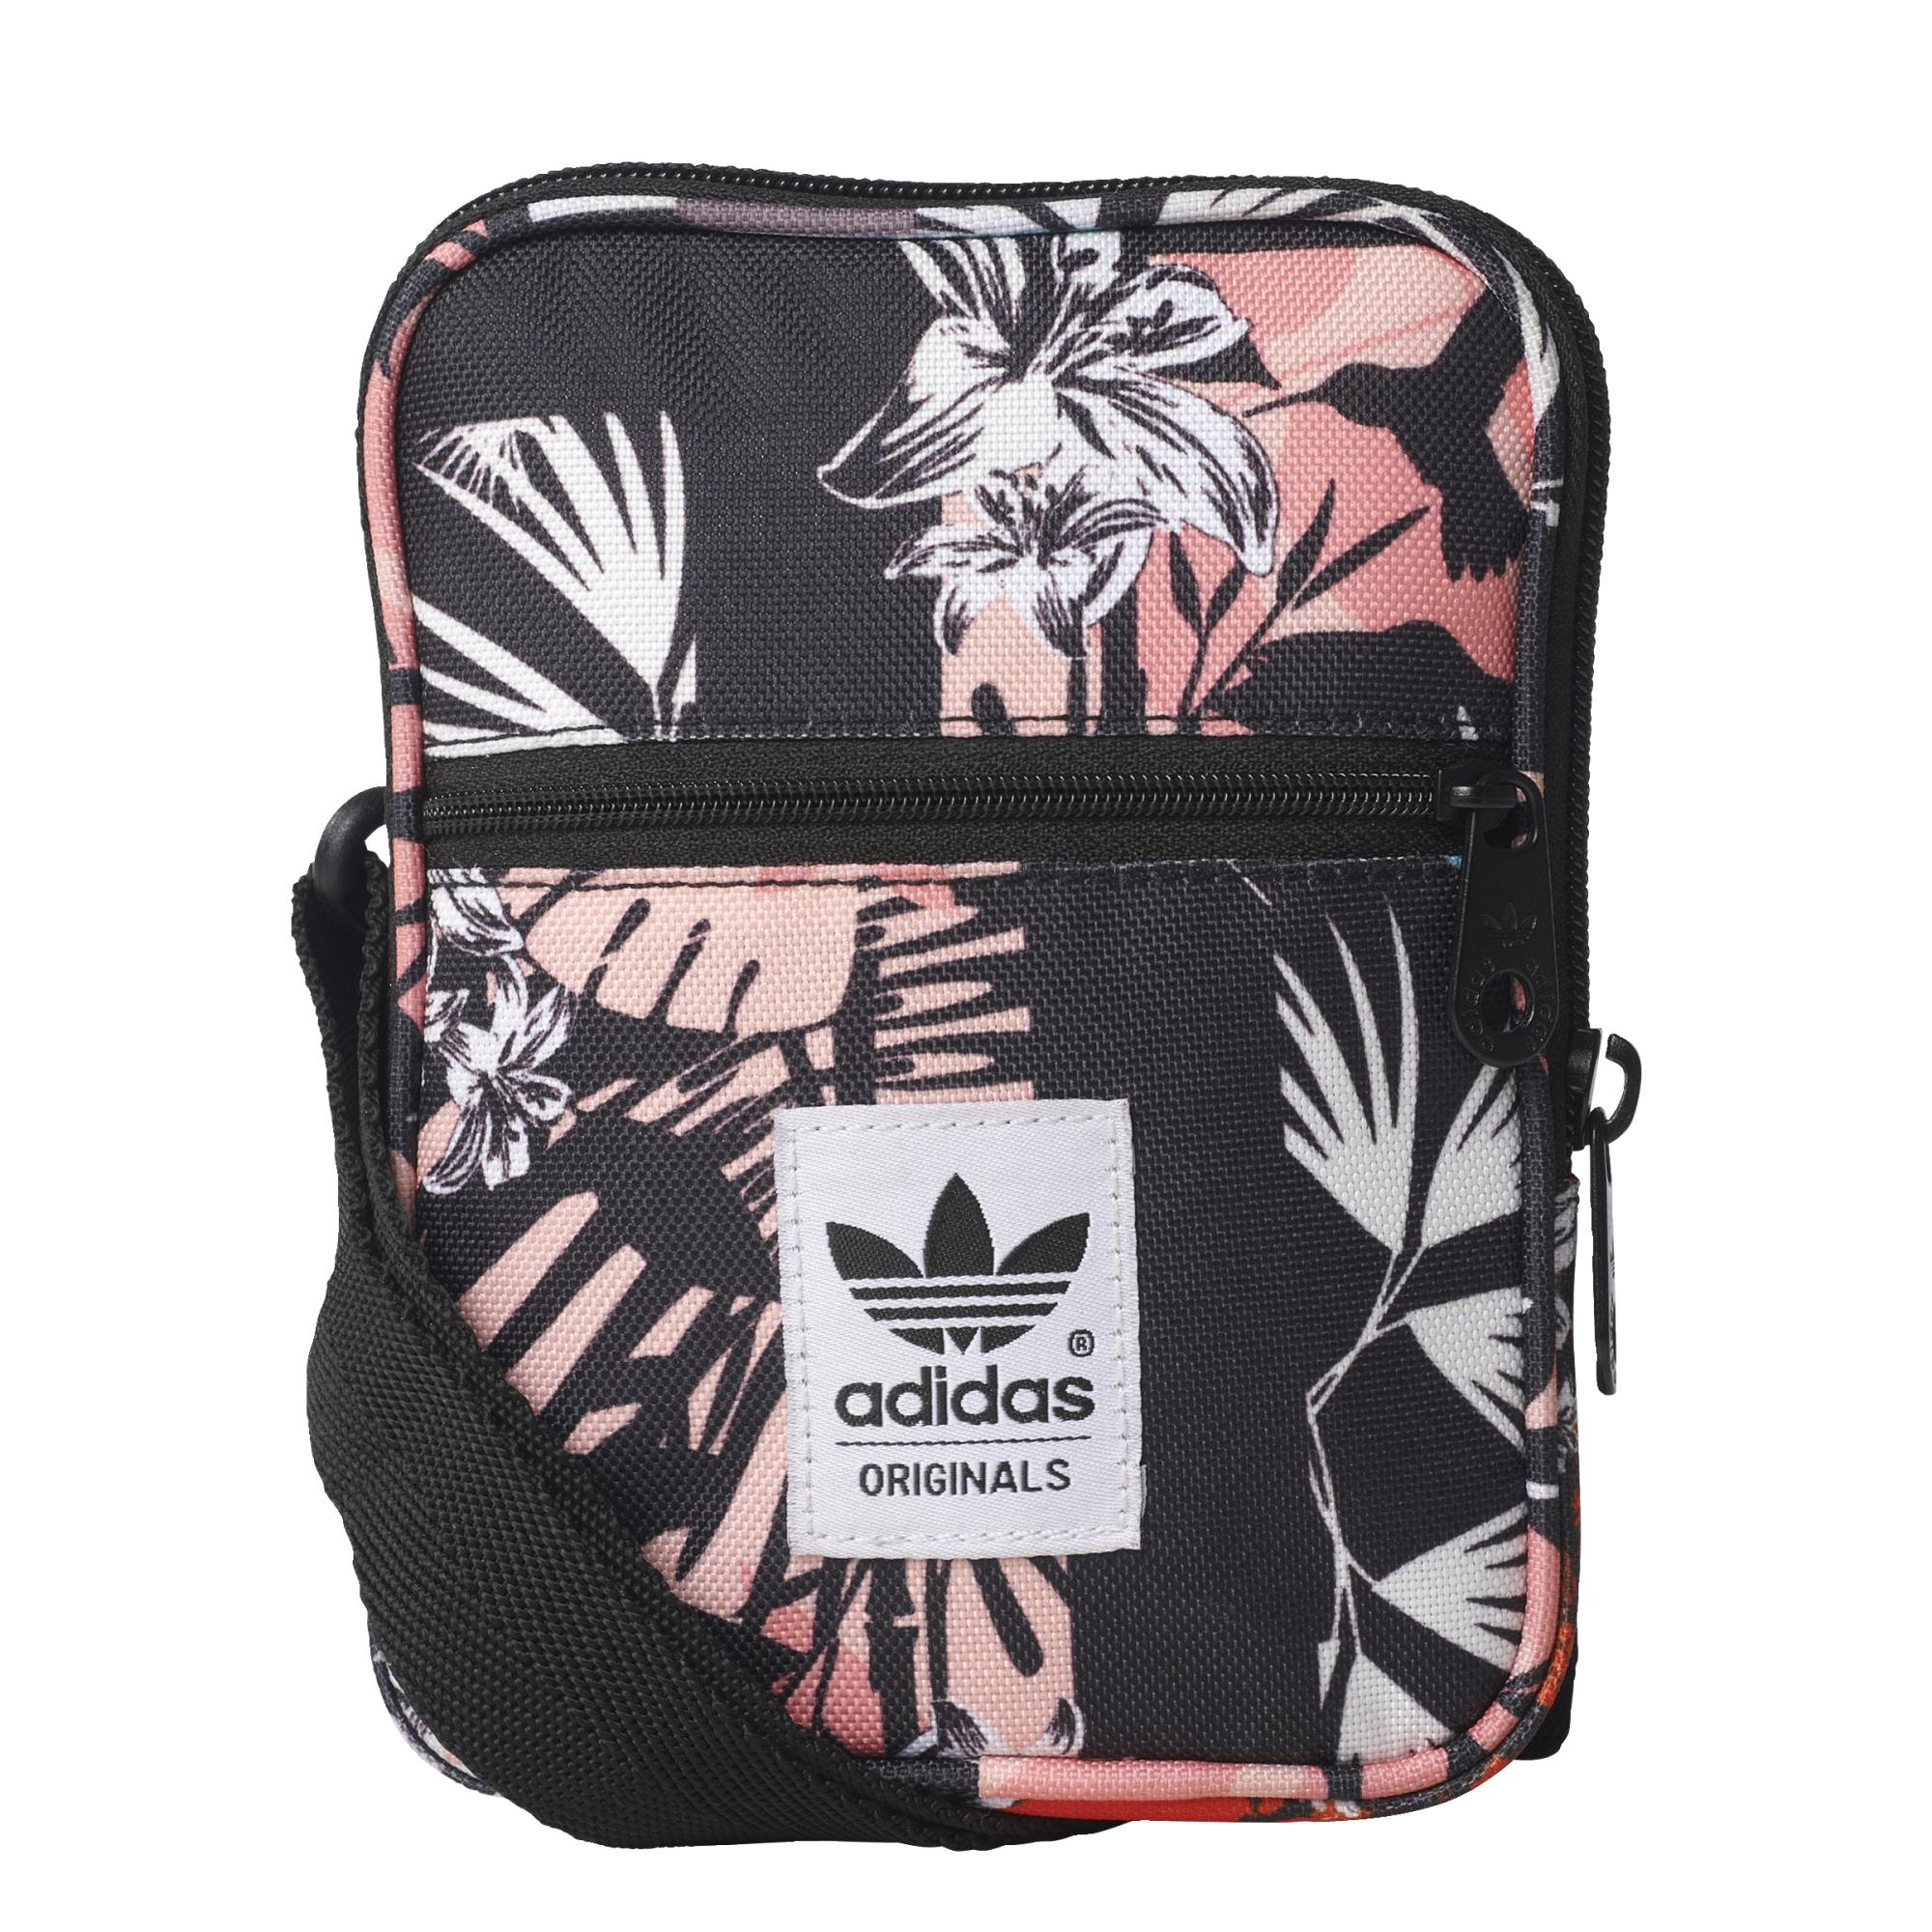 cb61a11e0e13 Adidas Originals Mini Bag Festival Soccer Tropic (multicolor). Oferta 17%